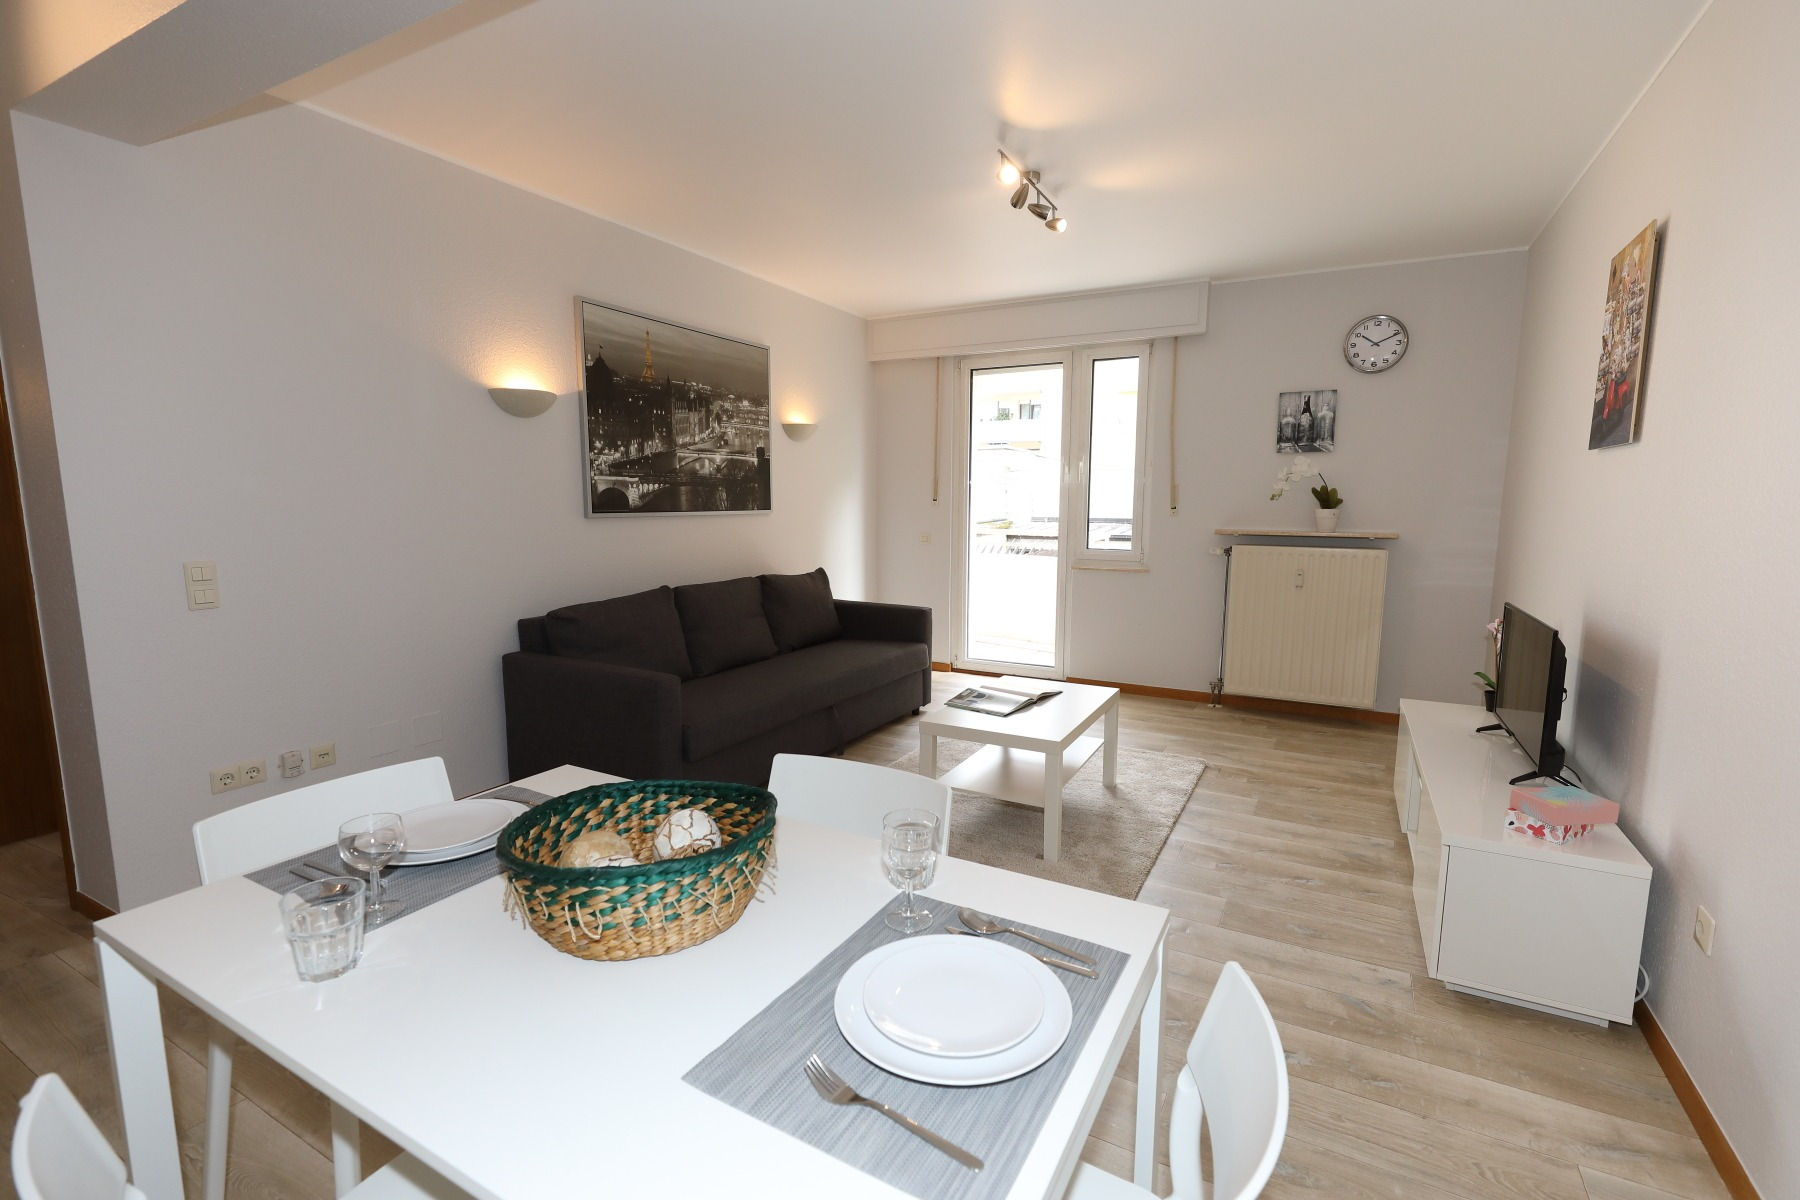 Spacious apartment with balcony in Limpertsberg – HUG 22